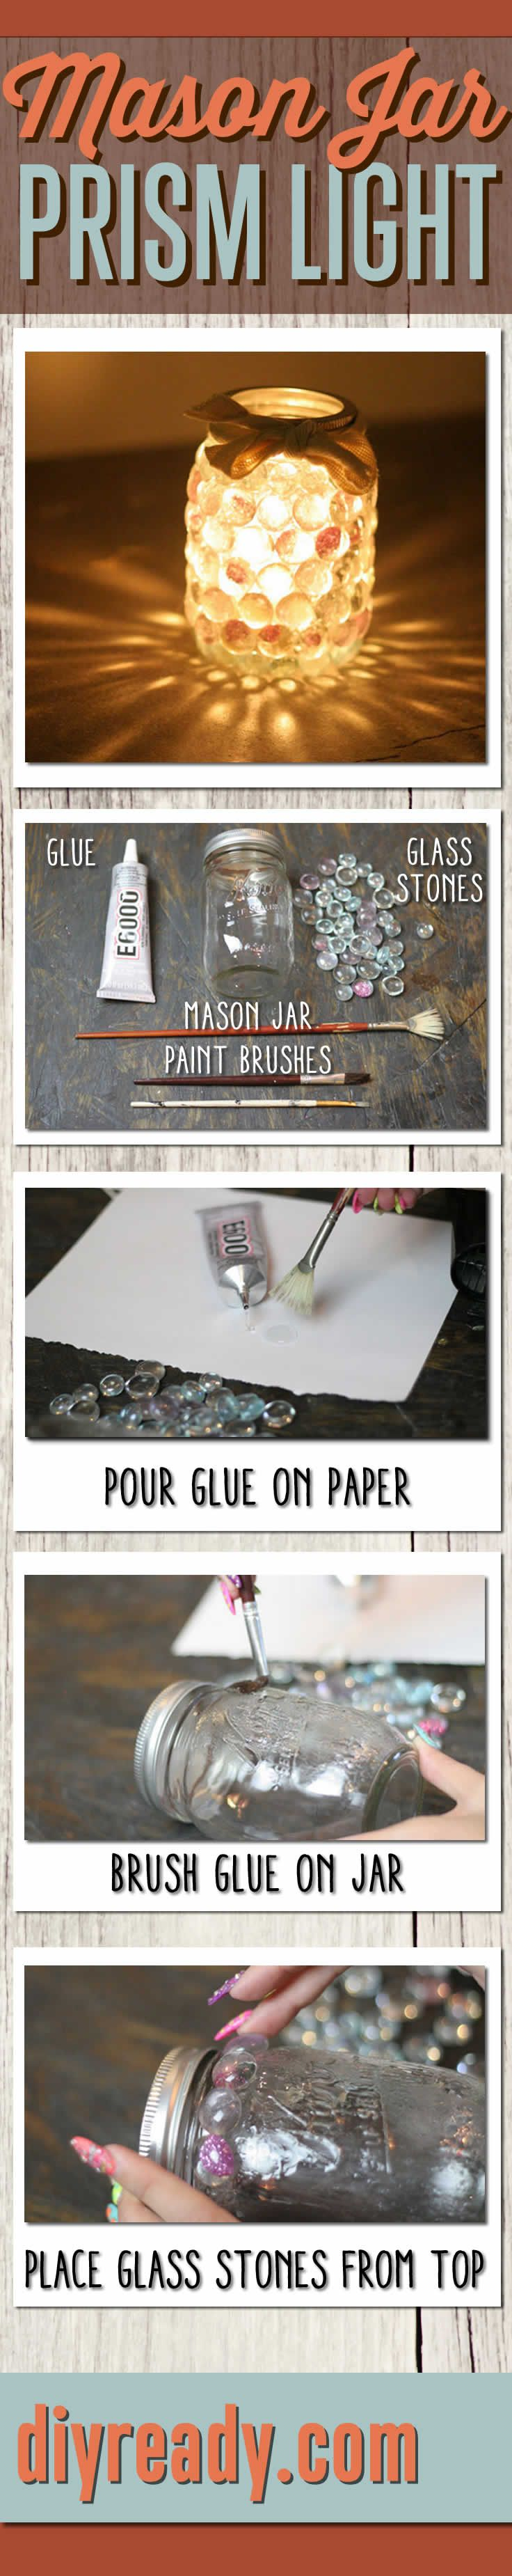 Mason Jar Dollar Store Craft - Easy DIY Prism Light #diy #masonjar #crafts http://diyready.com/mason-jar-crafts-prism-candle-light/